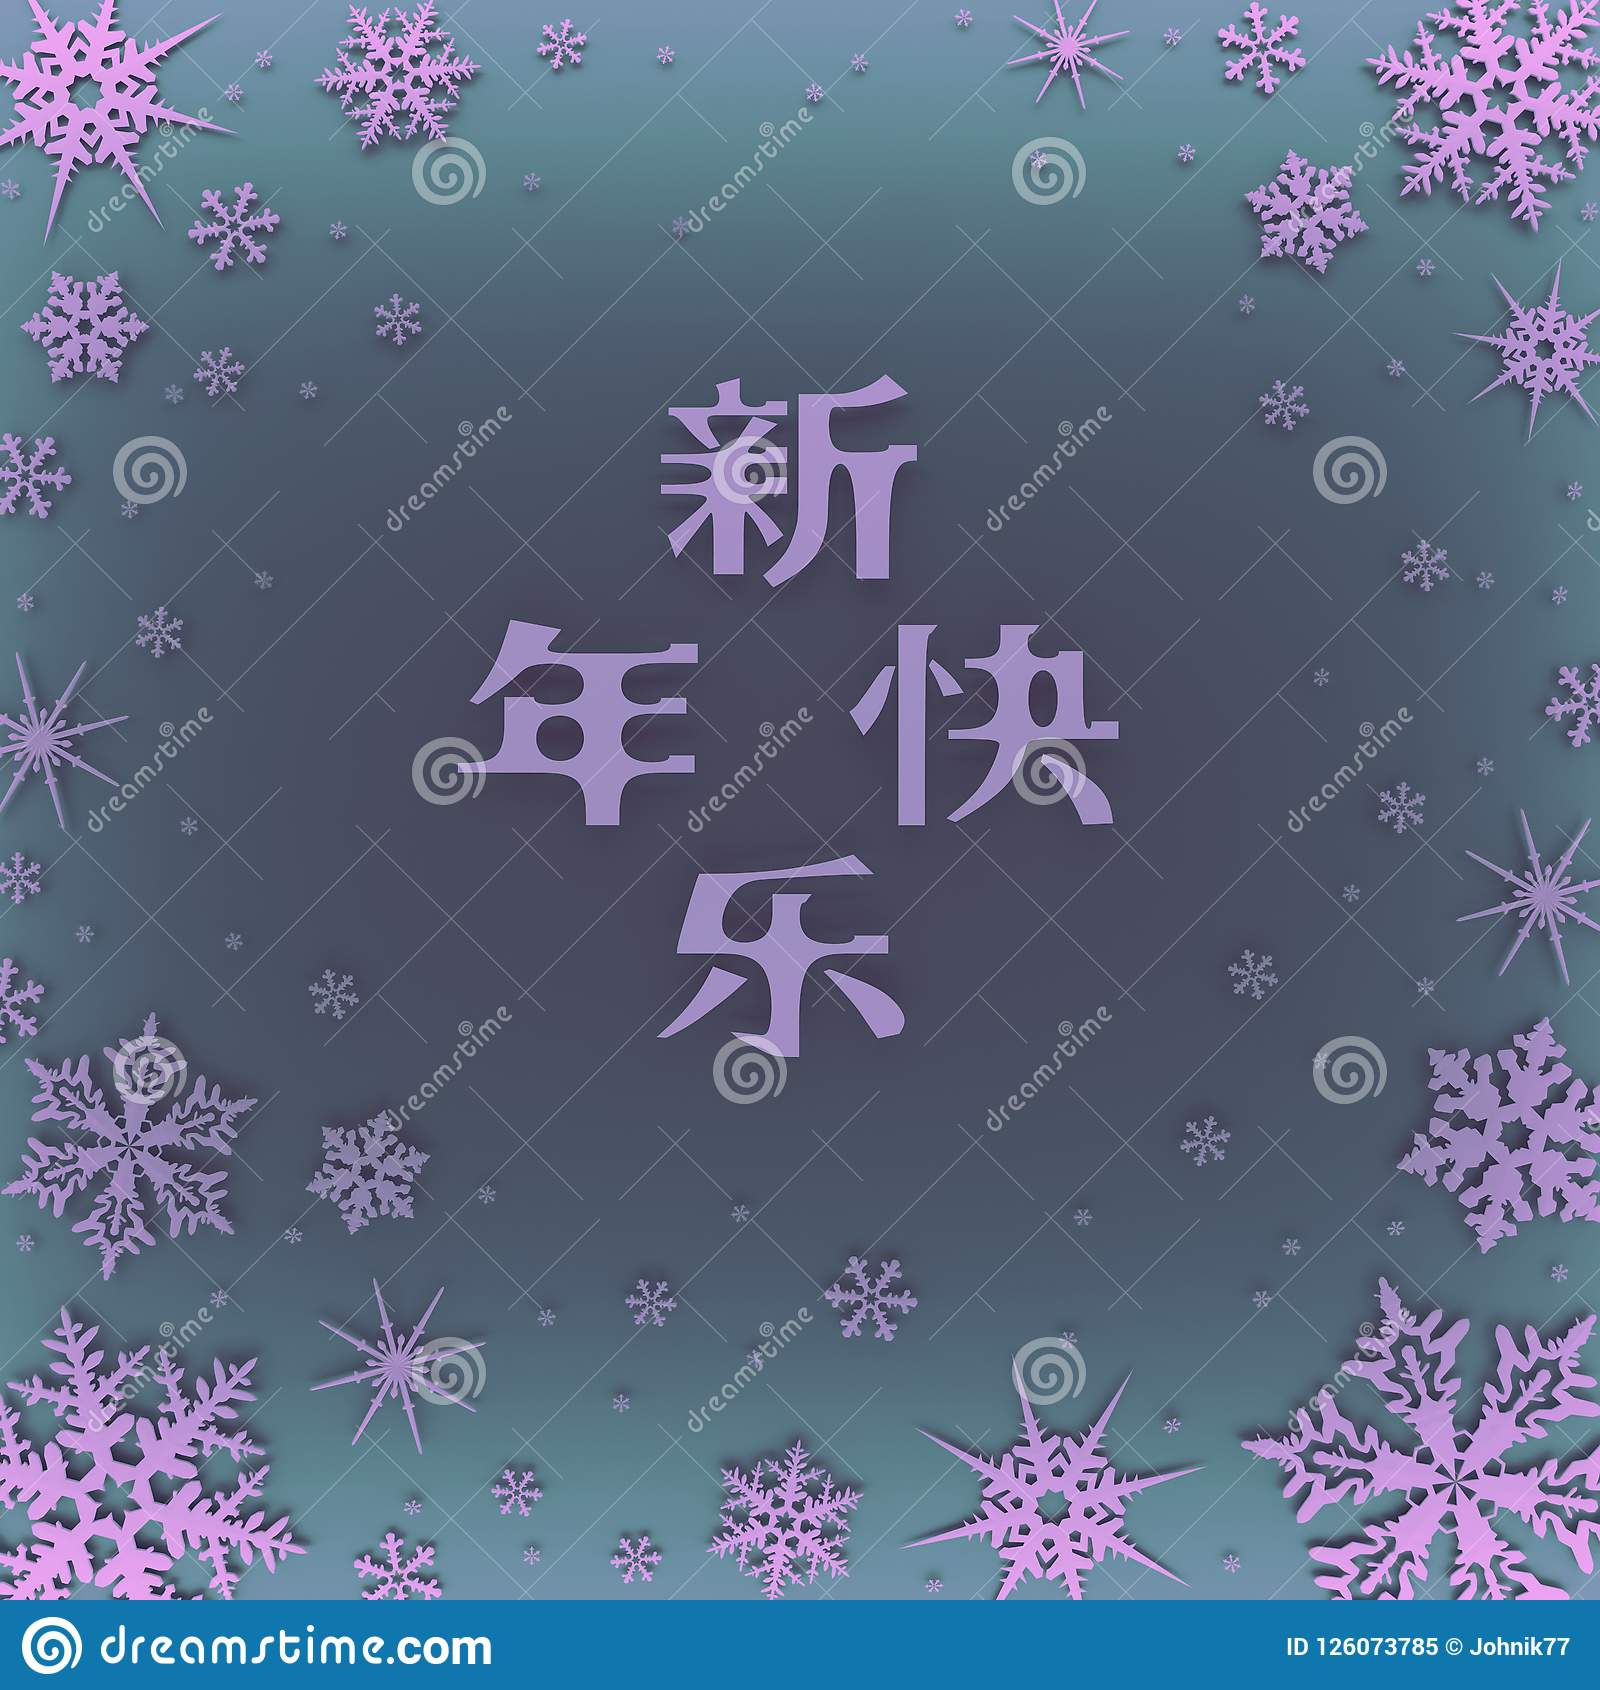 Christmas Card With New Year Greetings In Chinese Decorated With